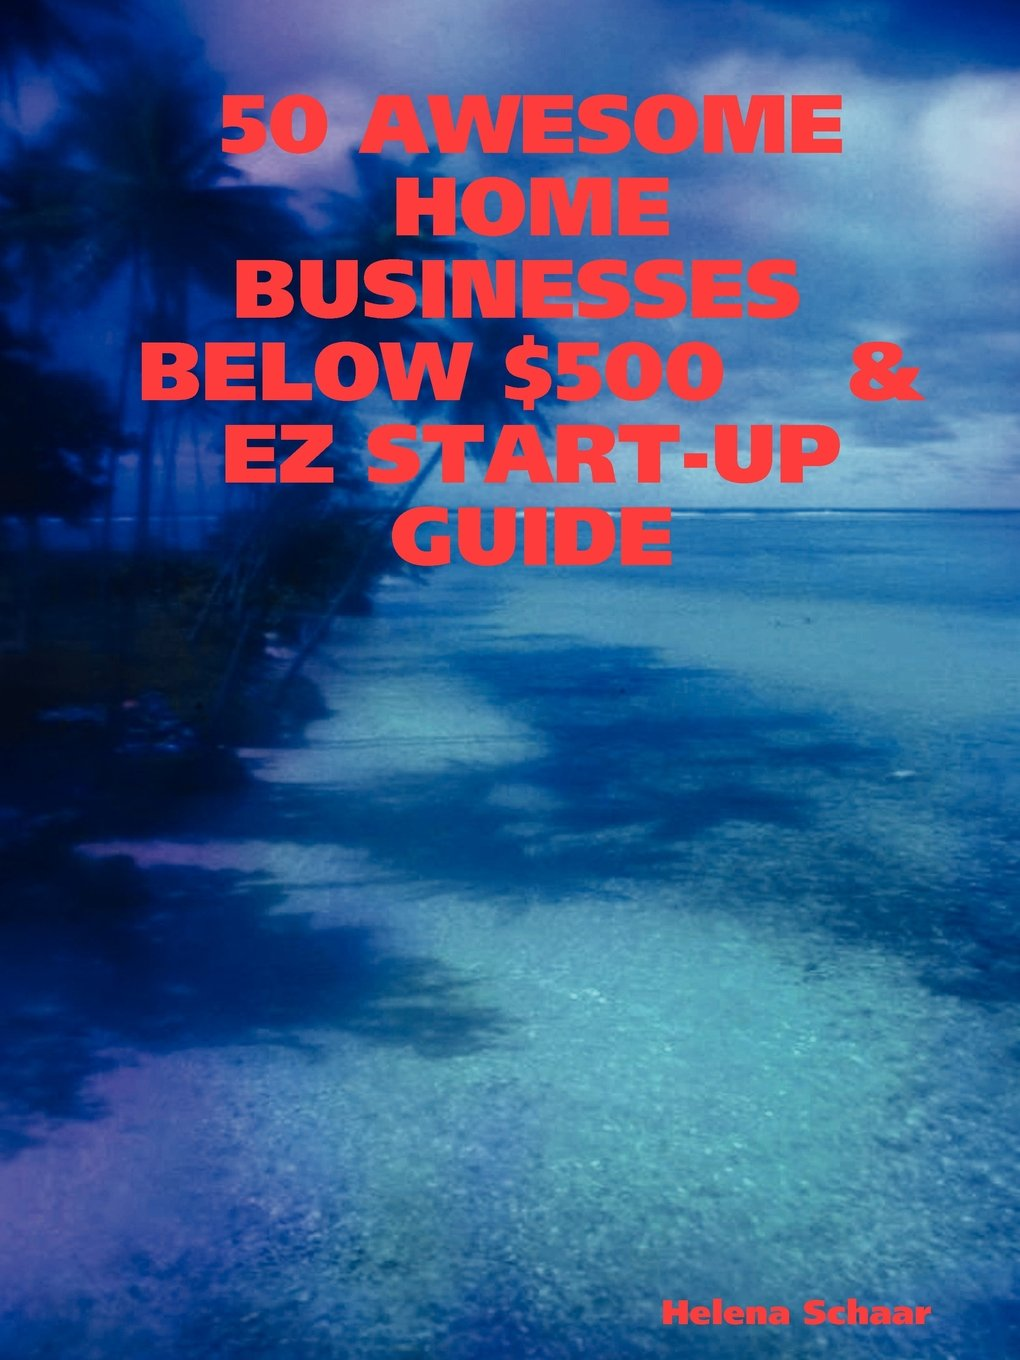 Download 50 Awesome Home Businesses Below $500 & EZ Start-Up Guide pdf epub